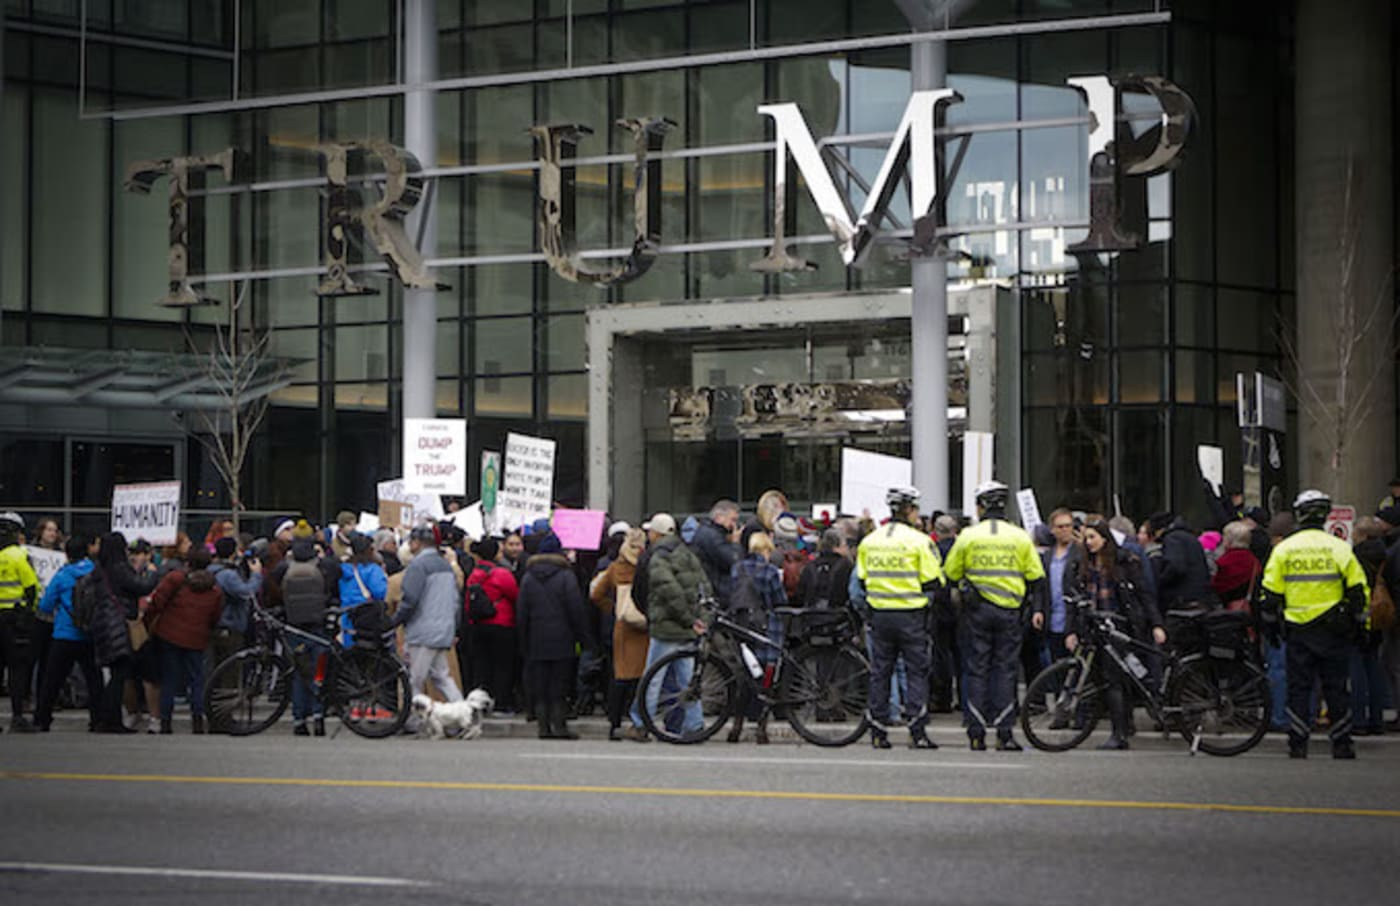 A protest outside a Trump building in Vancouver.